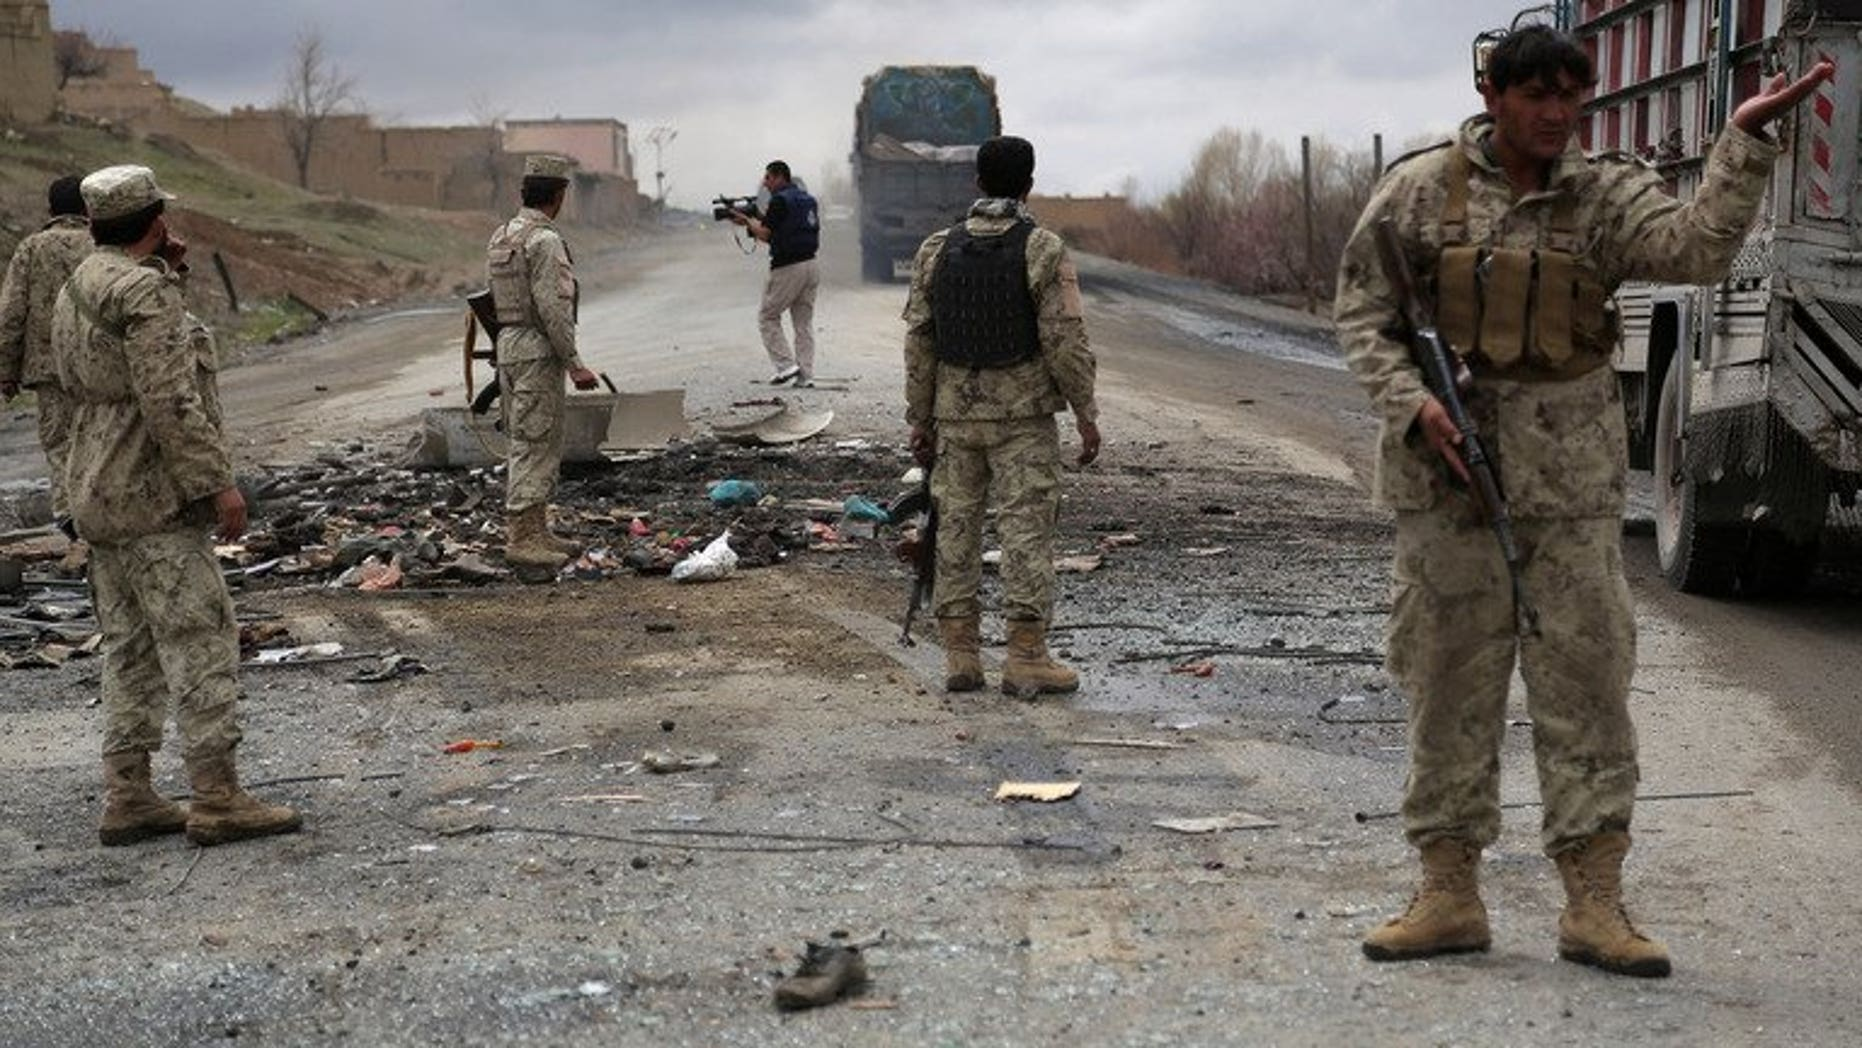 Afghanistan soldiers stand guard at the site of a roadside bomb blast in Saidabad district of Wardak province, on April 8, 2013. At least four Afghan intelligence agents were killed and dozens of civilians were wounded when a group of Taliban militants attacked an intelligence bureau in central Afghanistan.